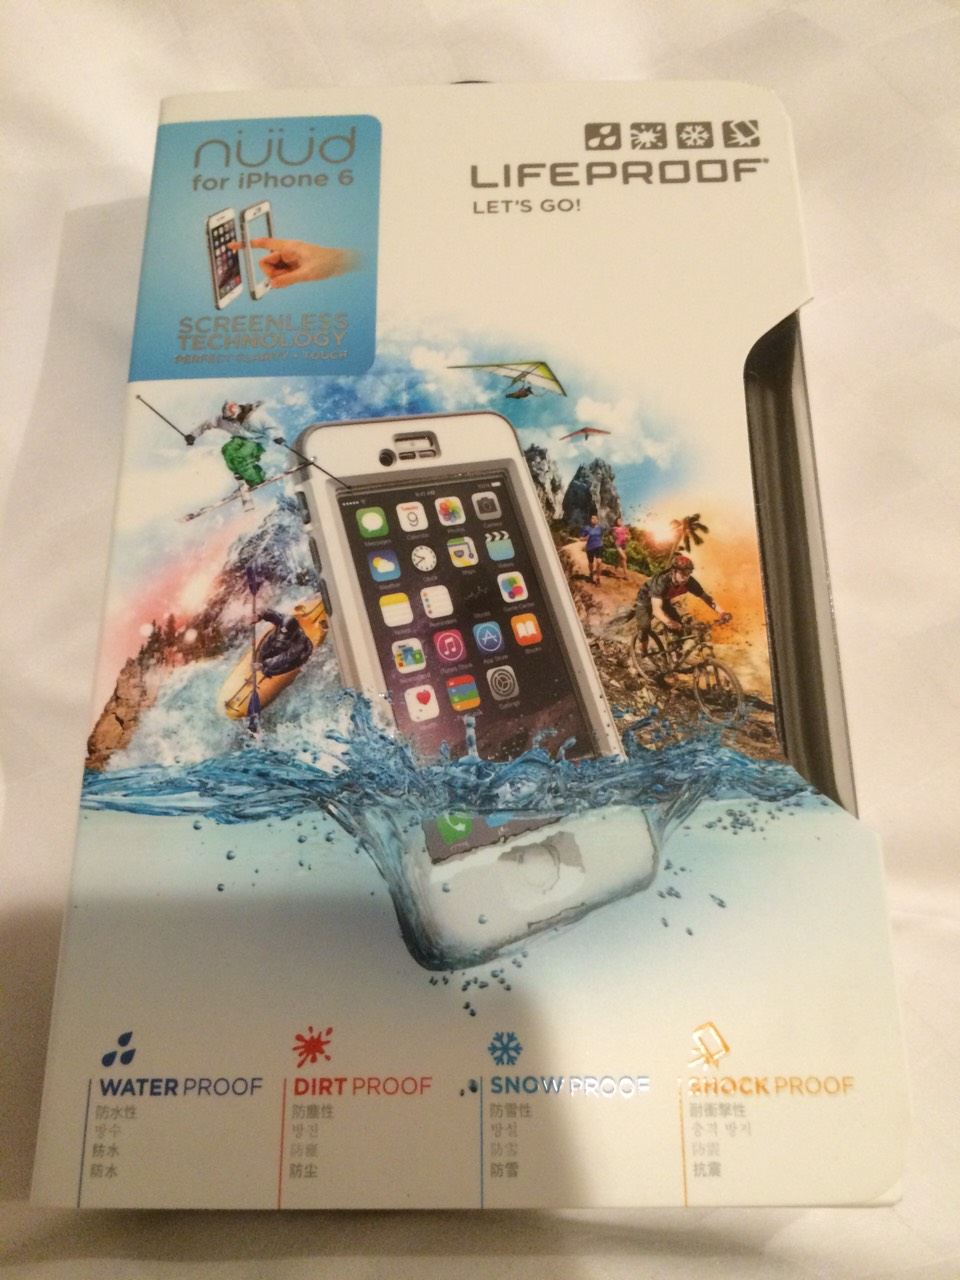 mobile-iphone6s-lifeproofnuud-byiphone6-package